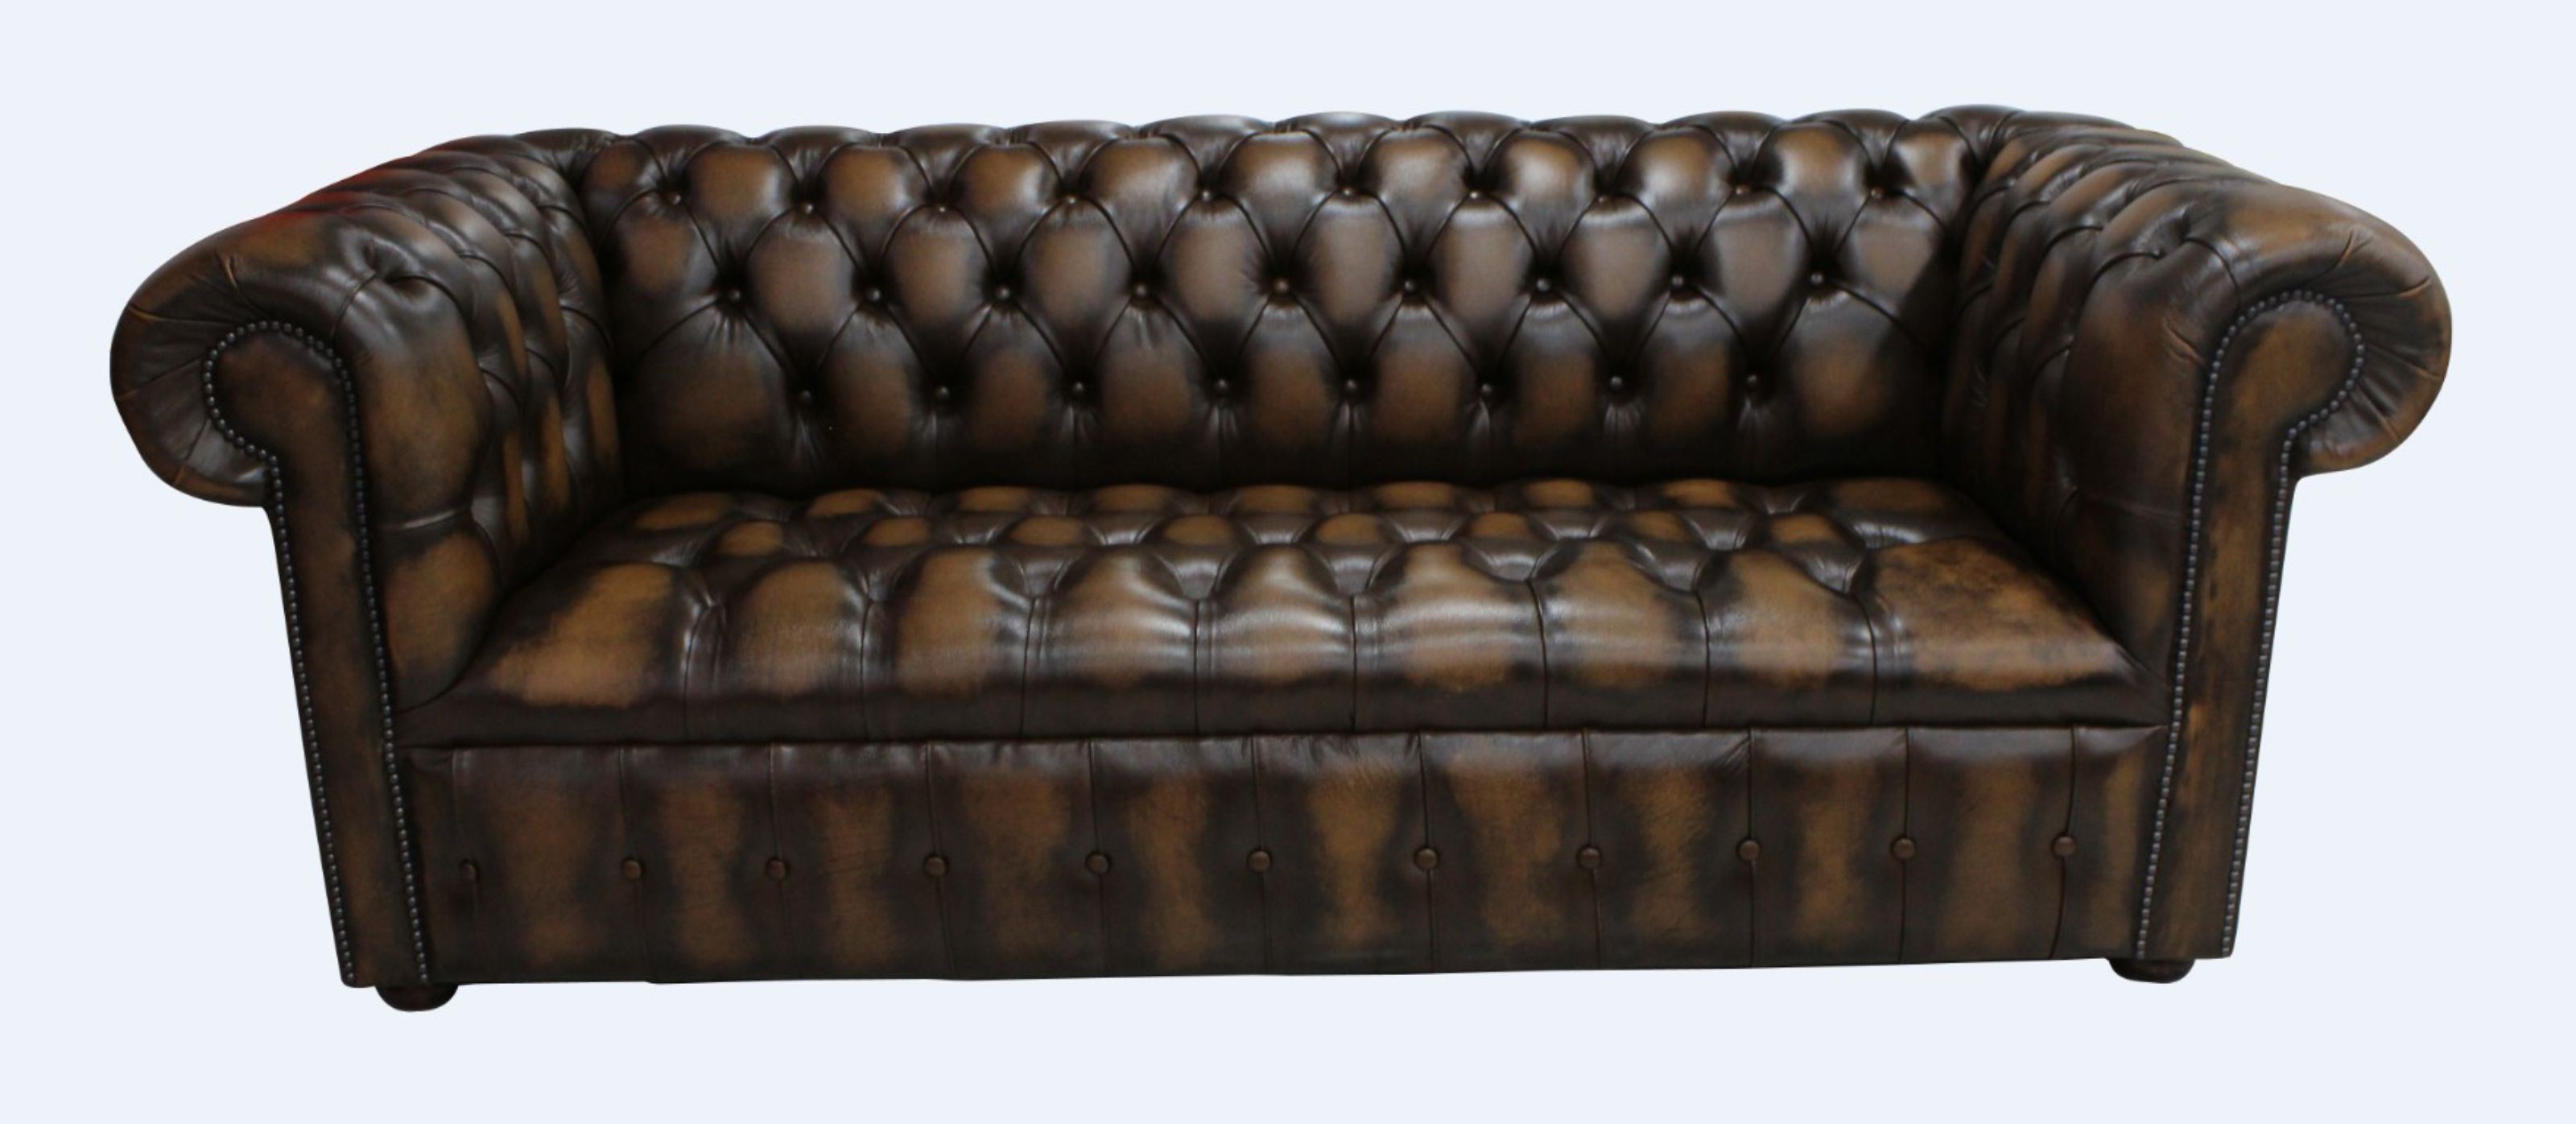 Tan Edwardian Chesterfield Buttoned Seat 3 Seater Sofa Designersofas4u